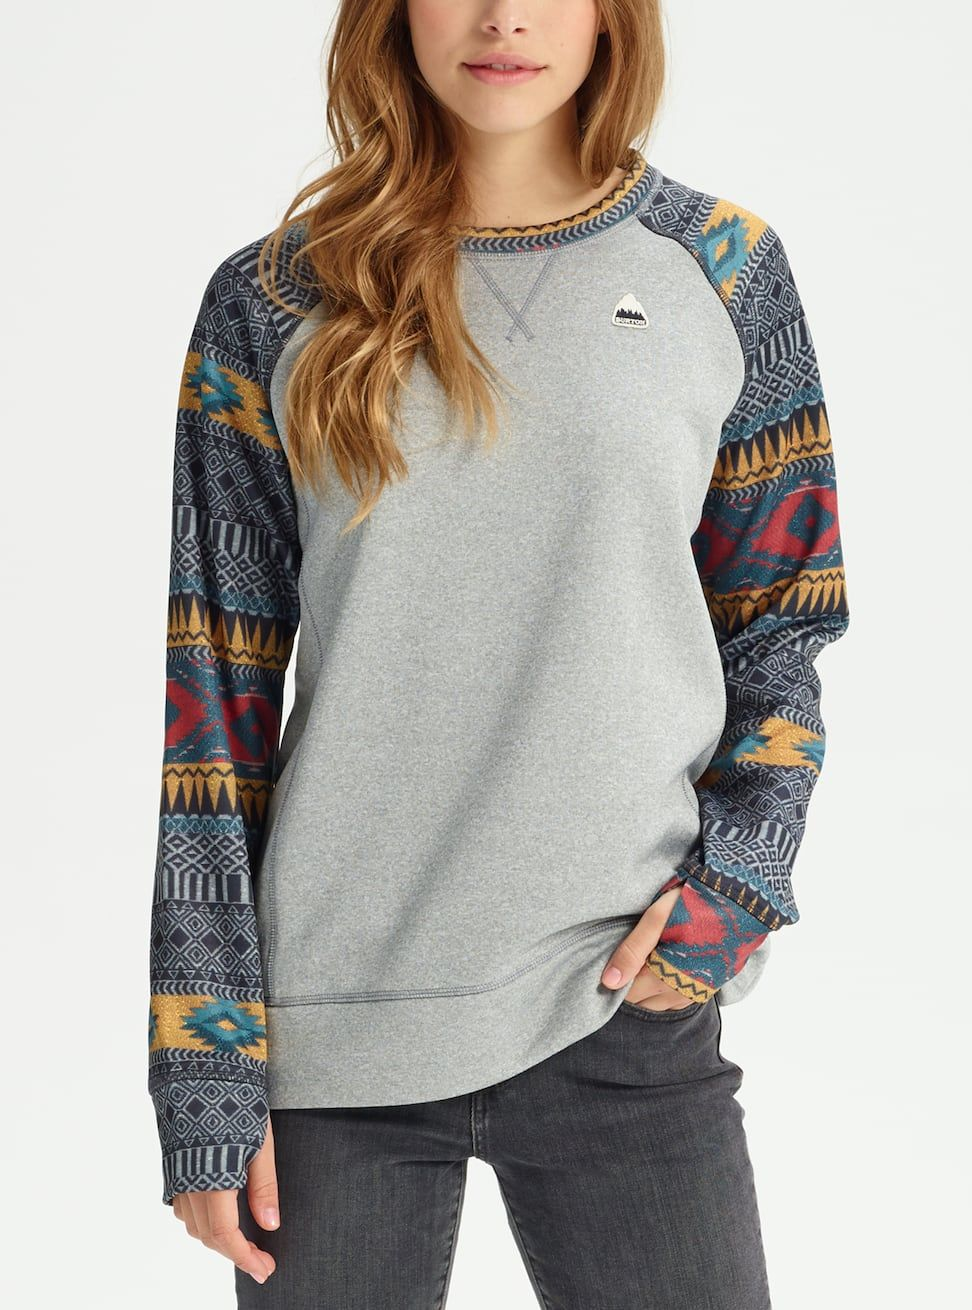 705c4a0c1dfb3 Shop the Women s Burton Oak Crew Sweatshirt along with more pullover and  full-zip hoodies